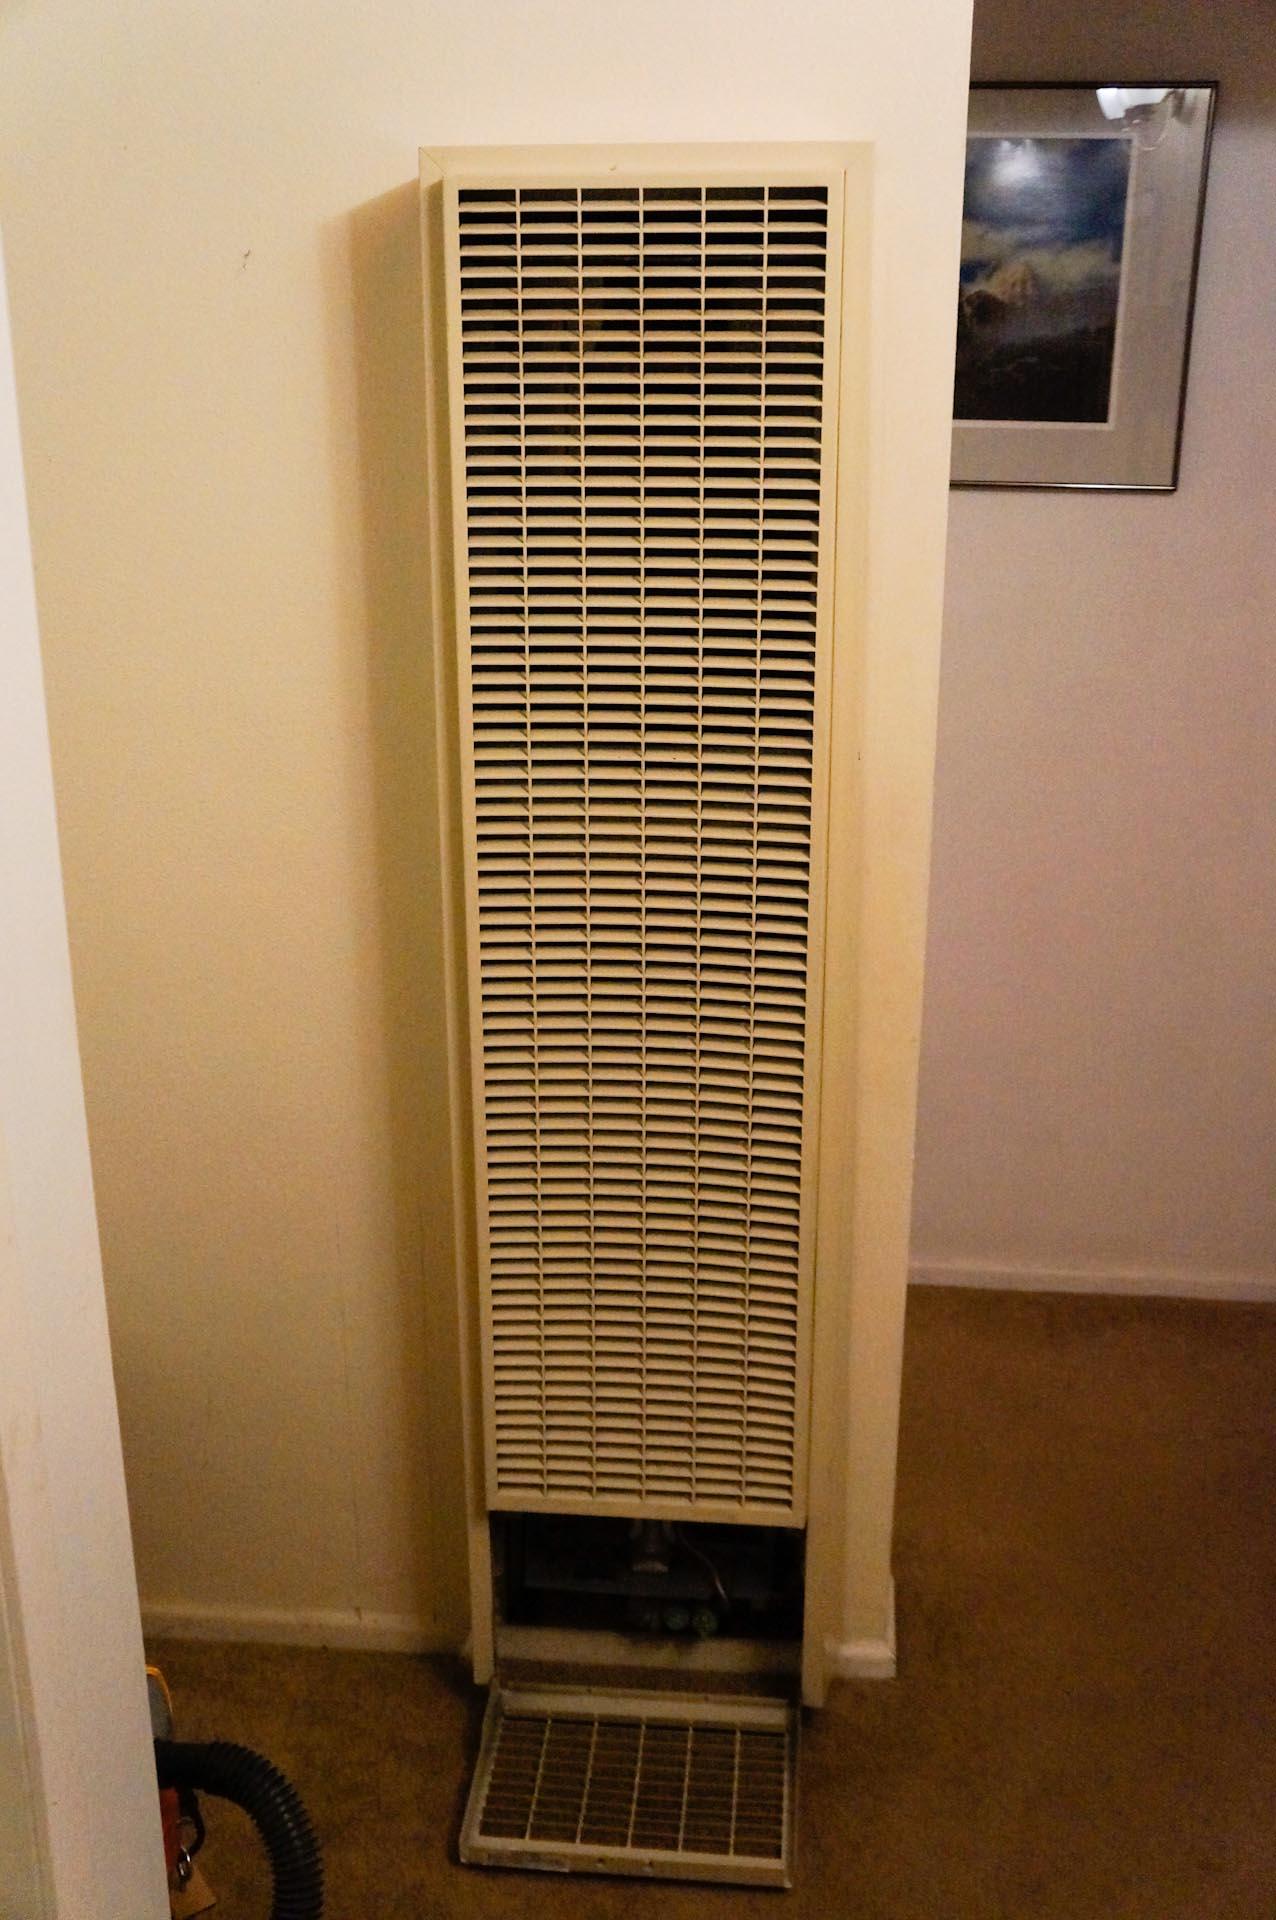 hight resolution of heater pictures enter image description here